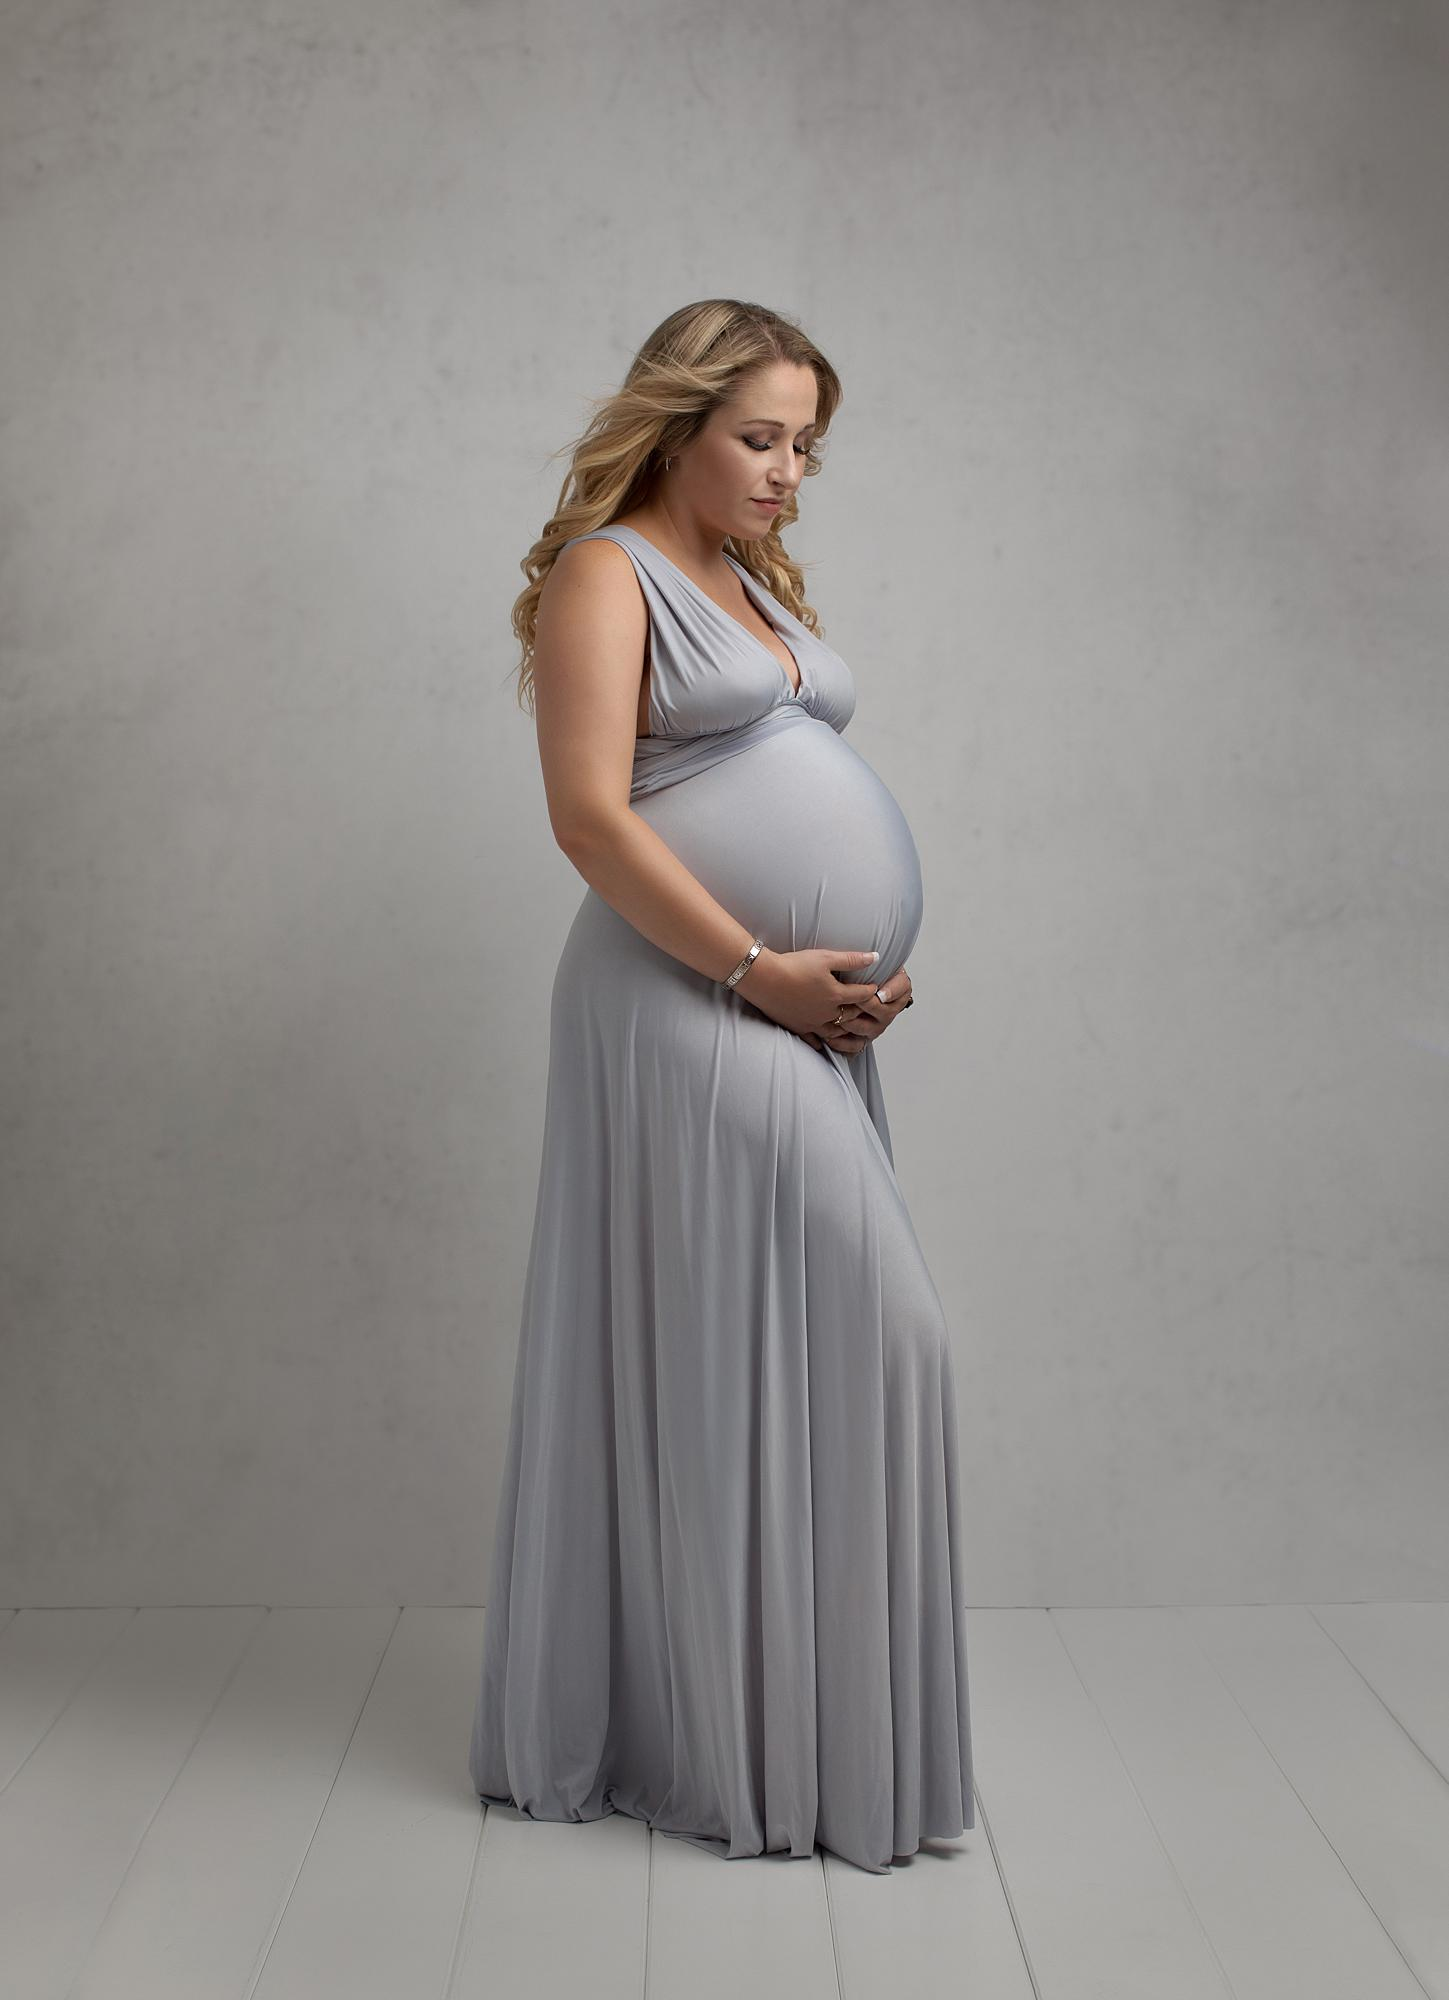 Pregnant woman posing in a pale grey dress holds her belly for a maternity photoshoot in Alison McKenny's Suffolk studio